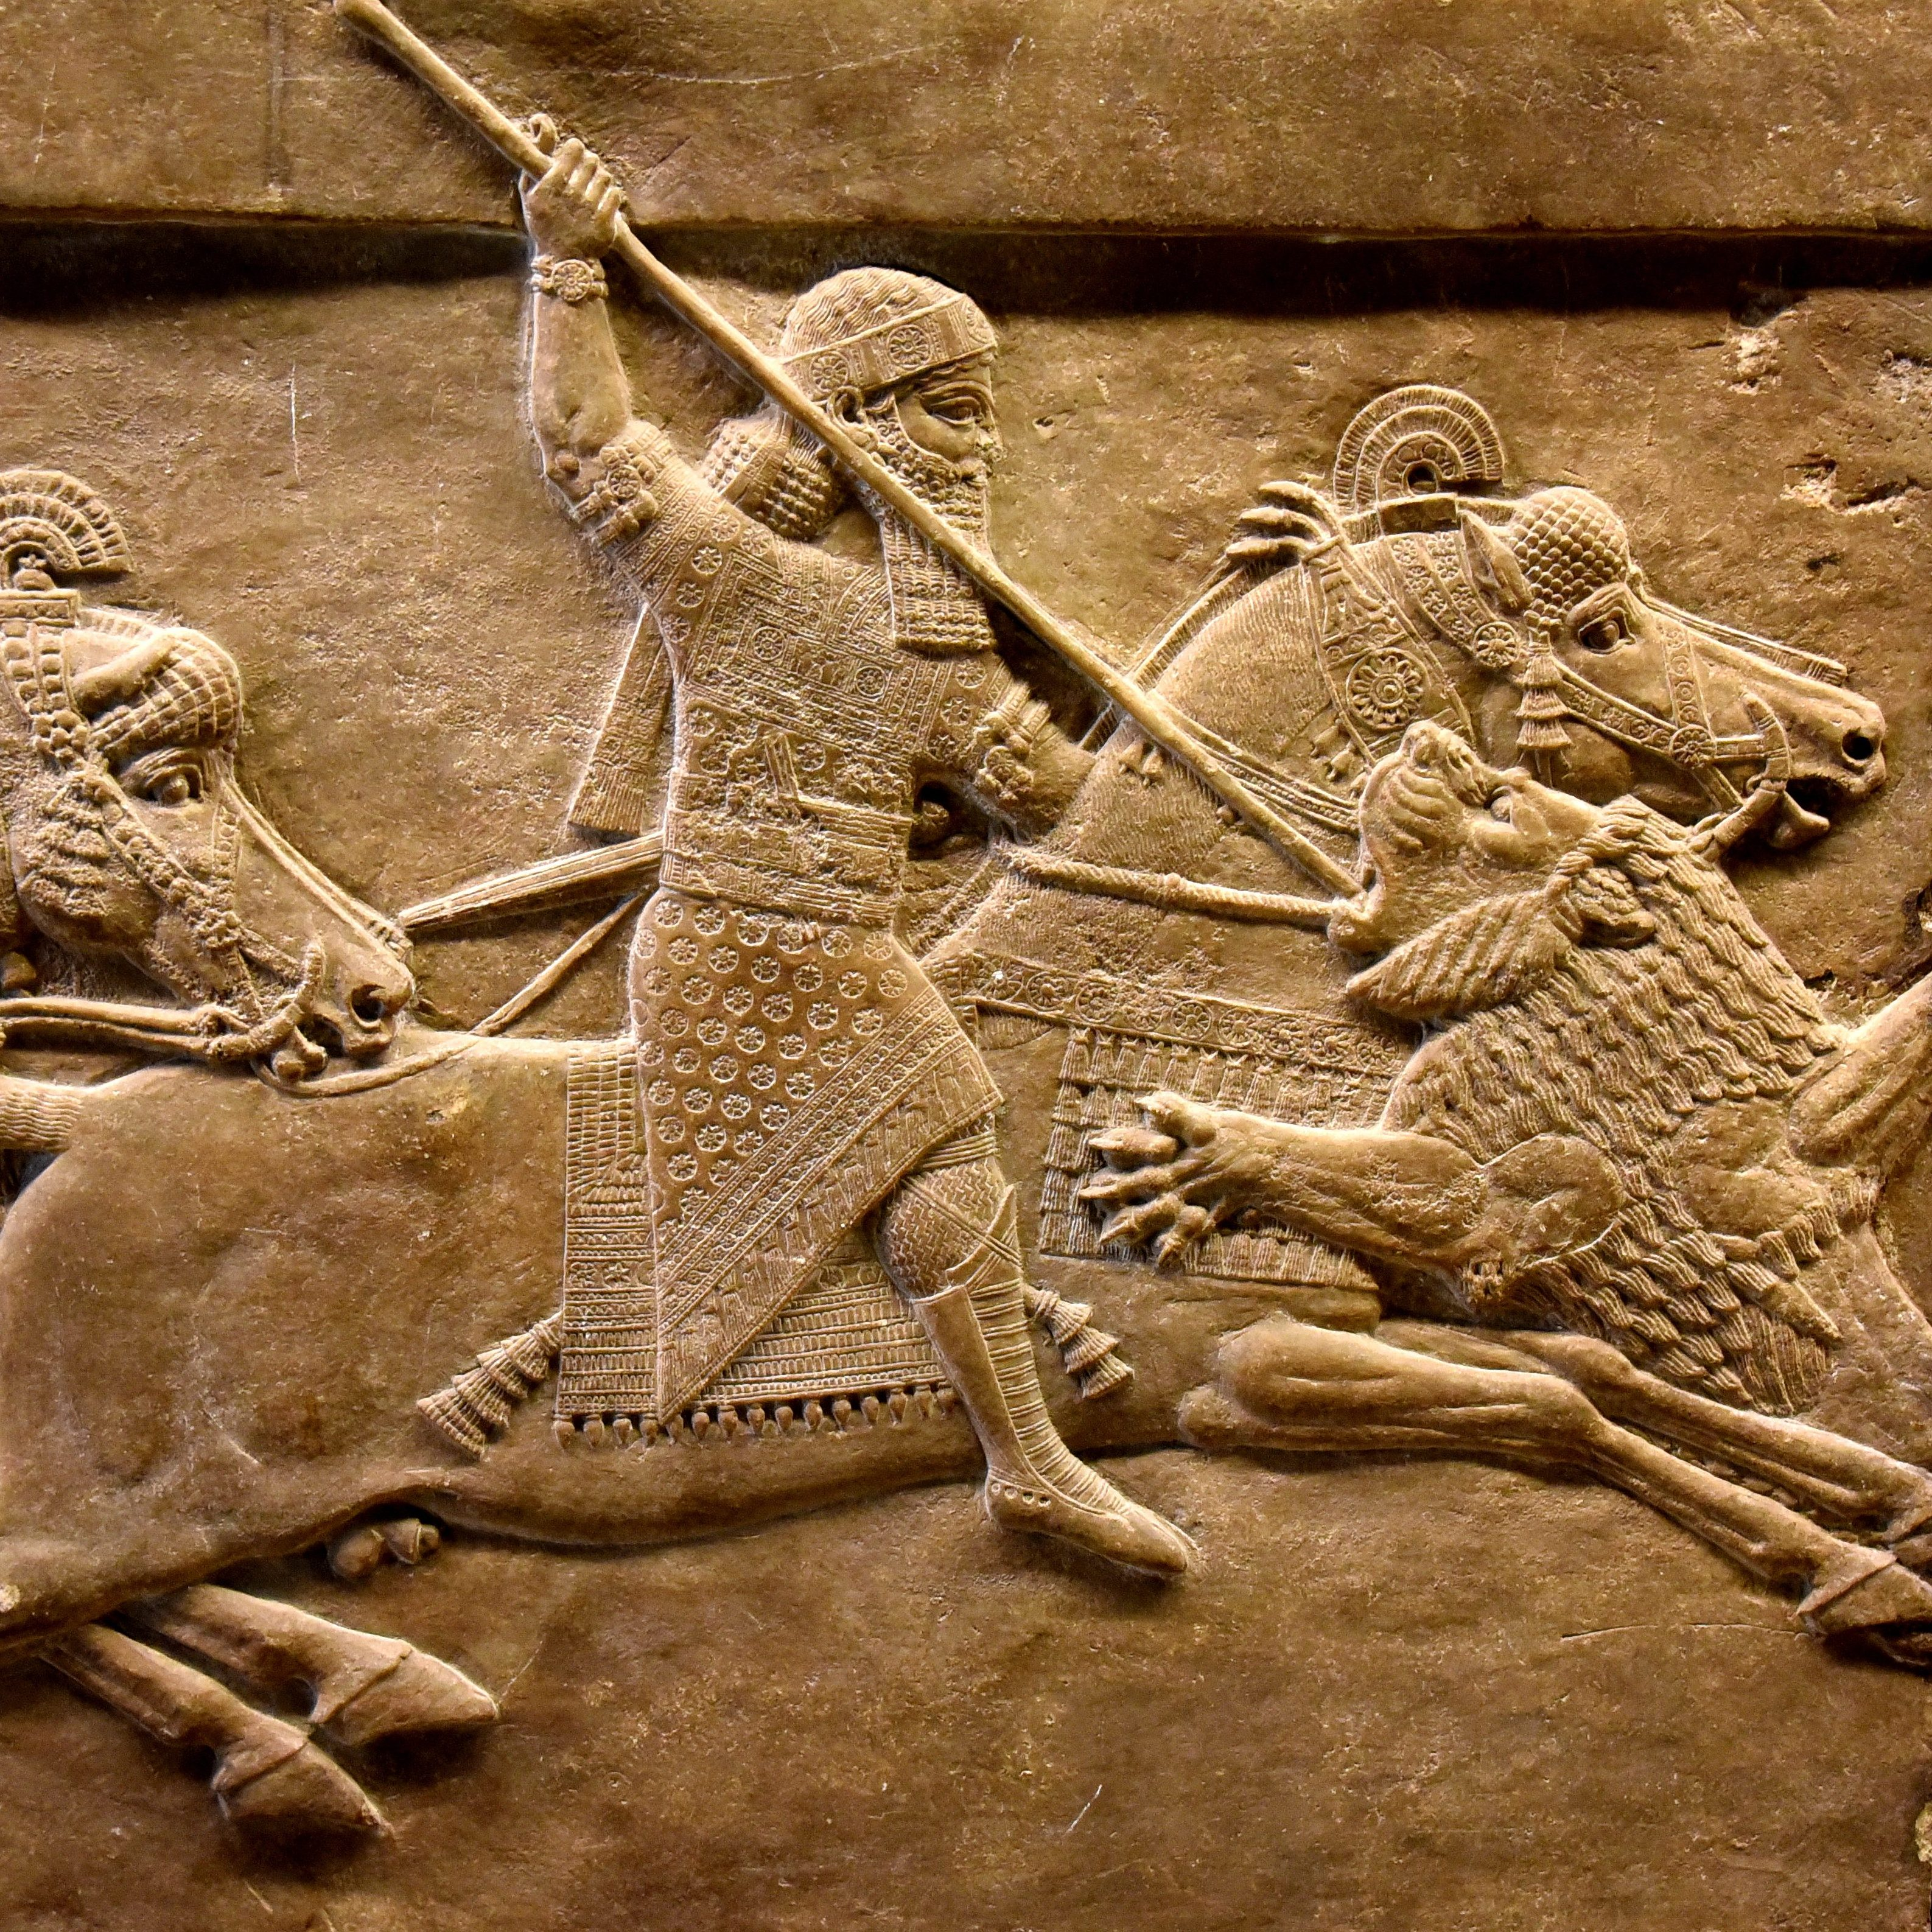 The Ancient Near East: A Conversation with Dr. Paul Collins, Ashmolean Museum, Oxford